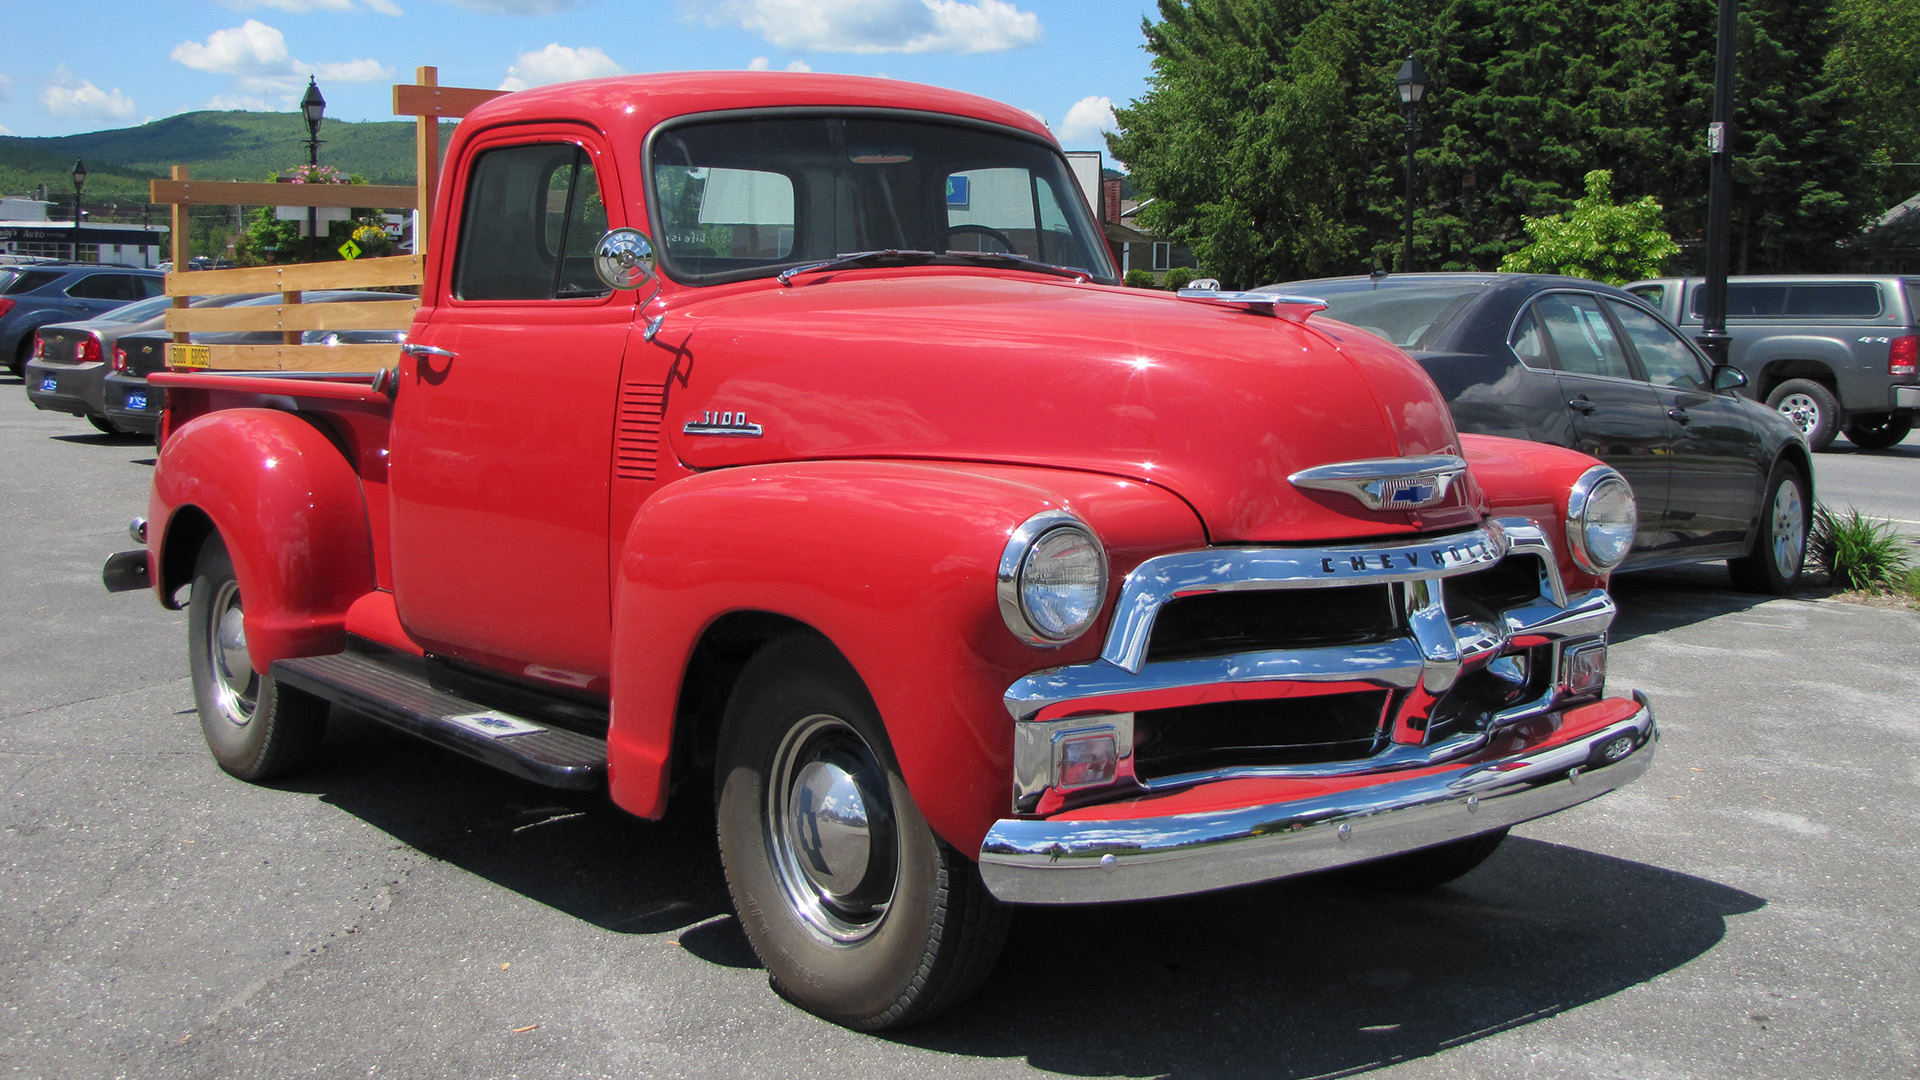 1950 Chevy Pickup by badATchaos on DeviantArt